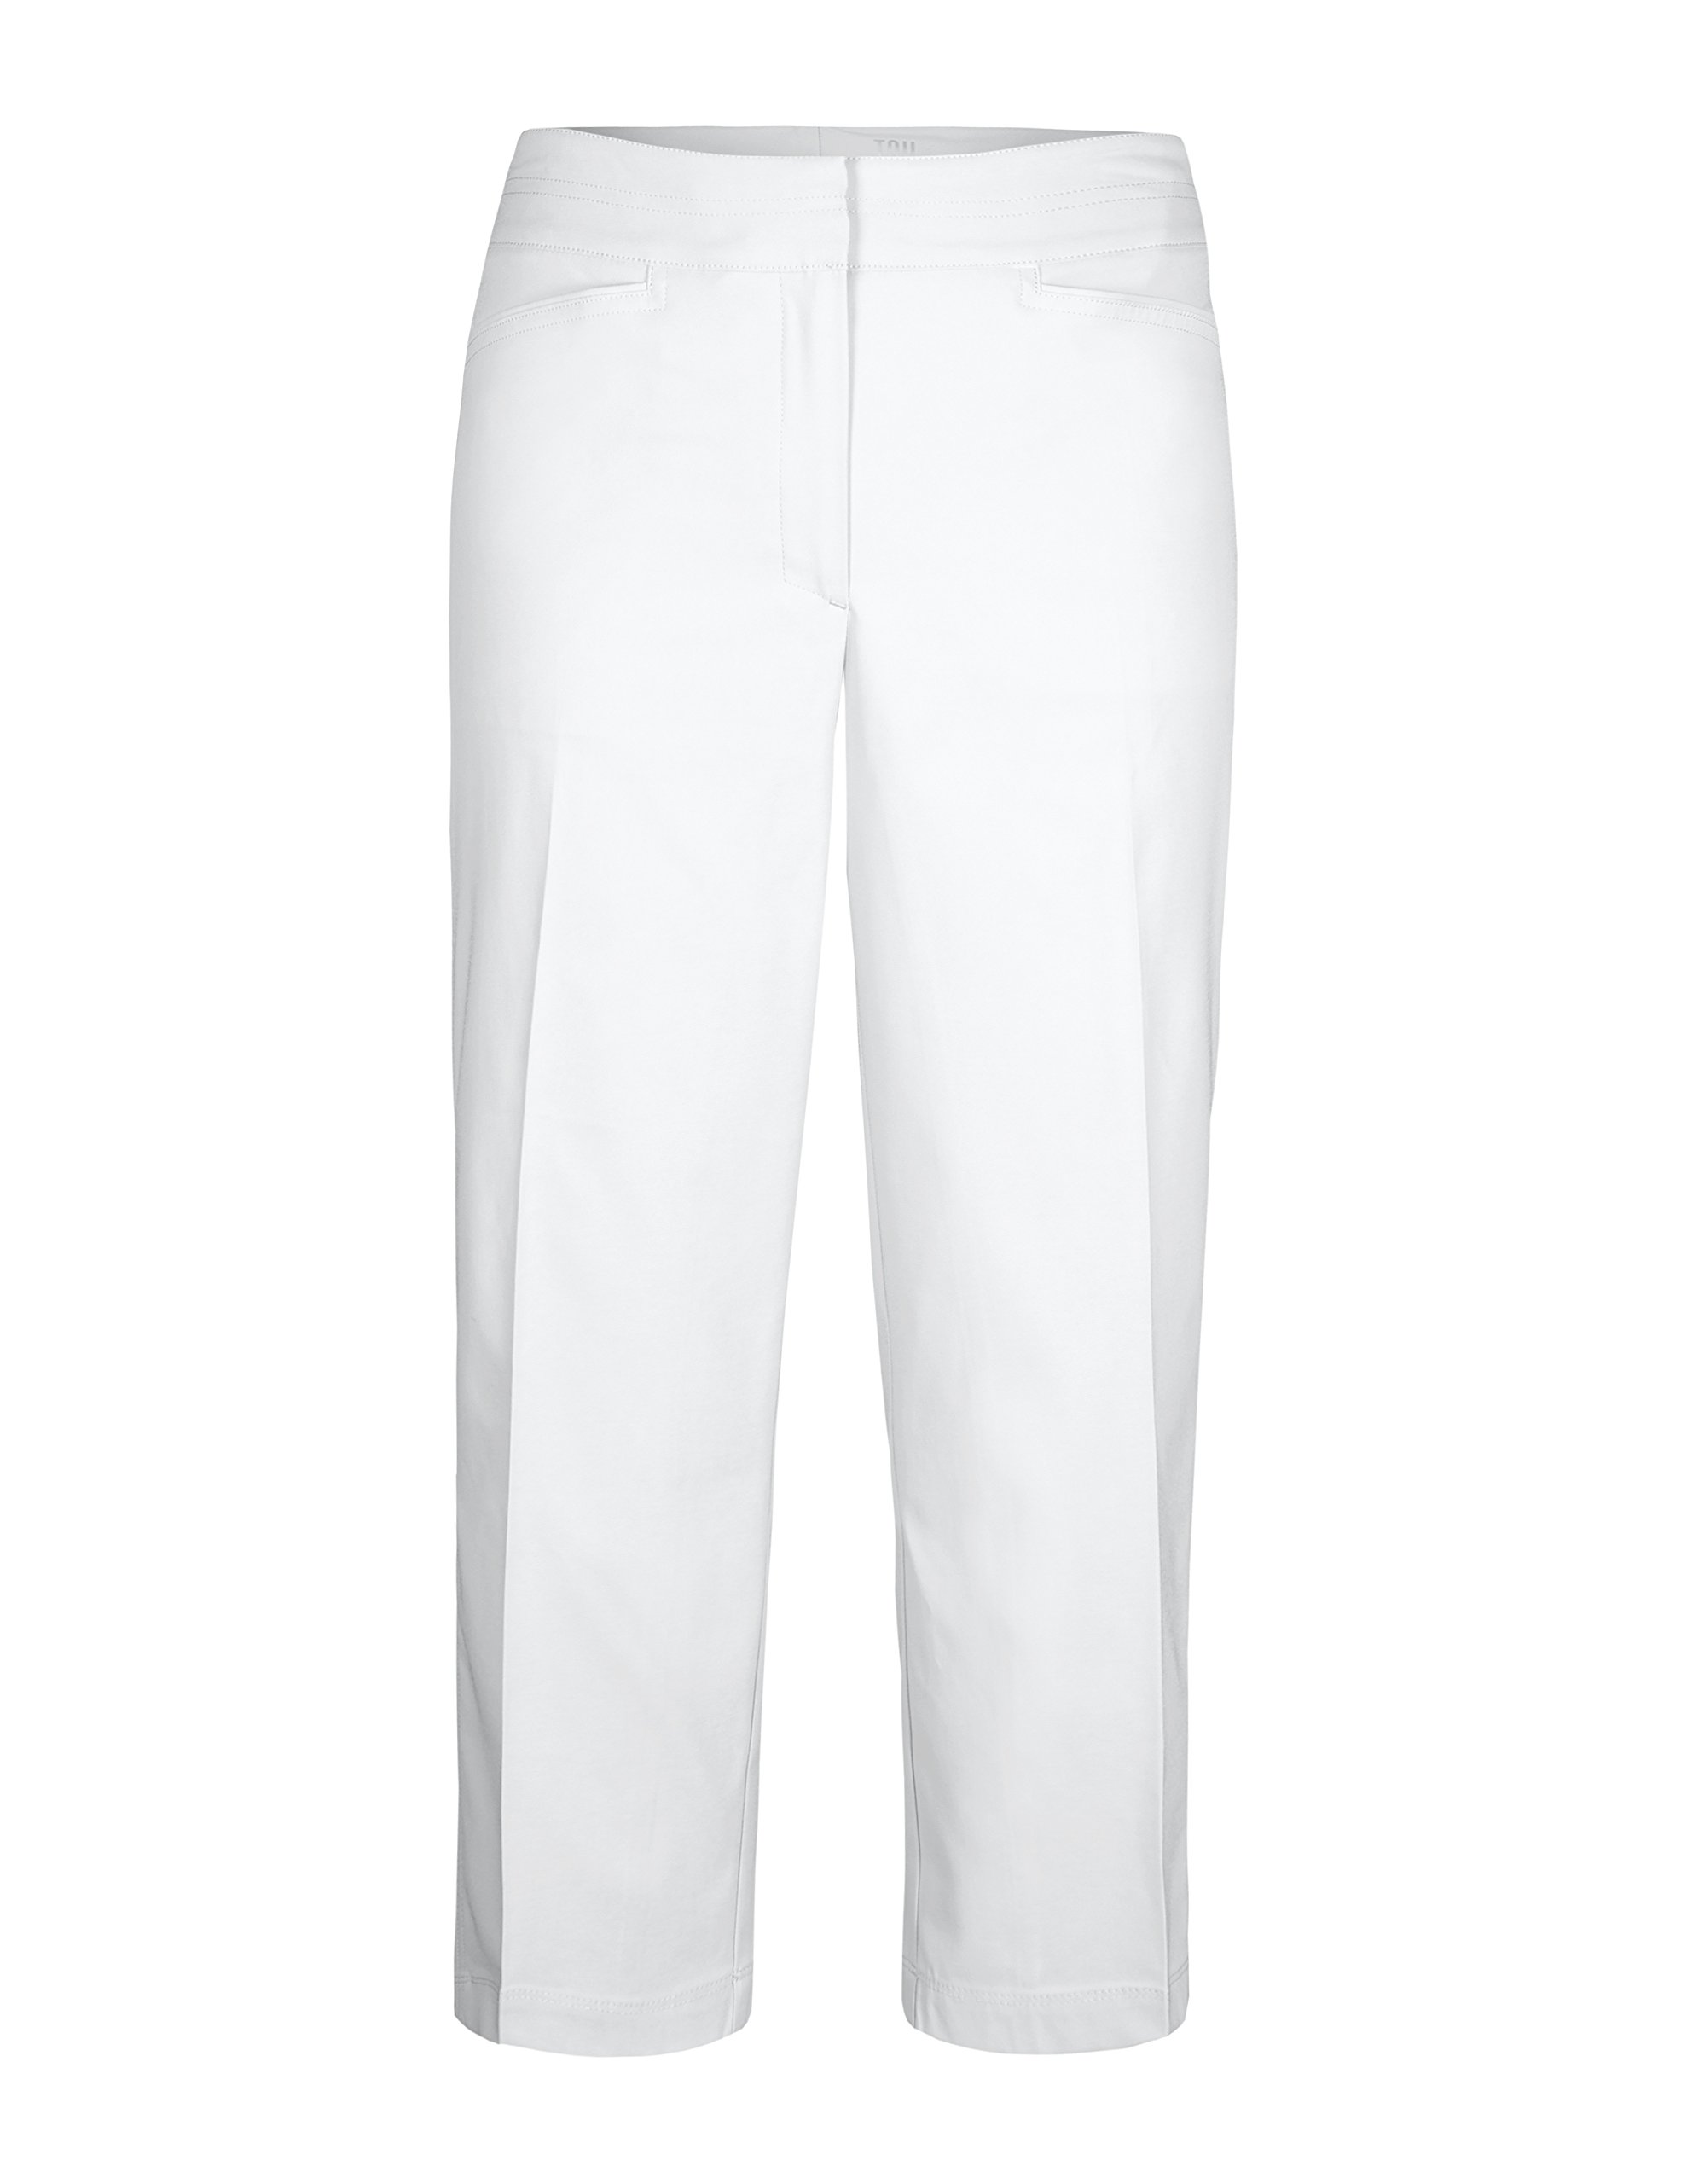 Tail Activewear Women's Classic Capri 4 White by Tail (Image #3)